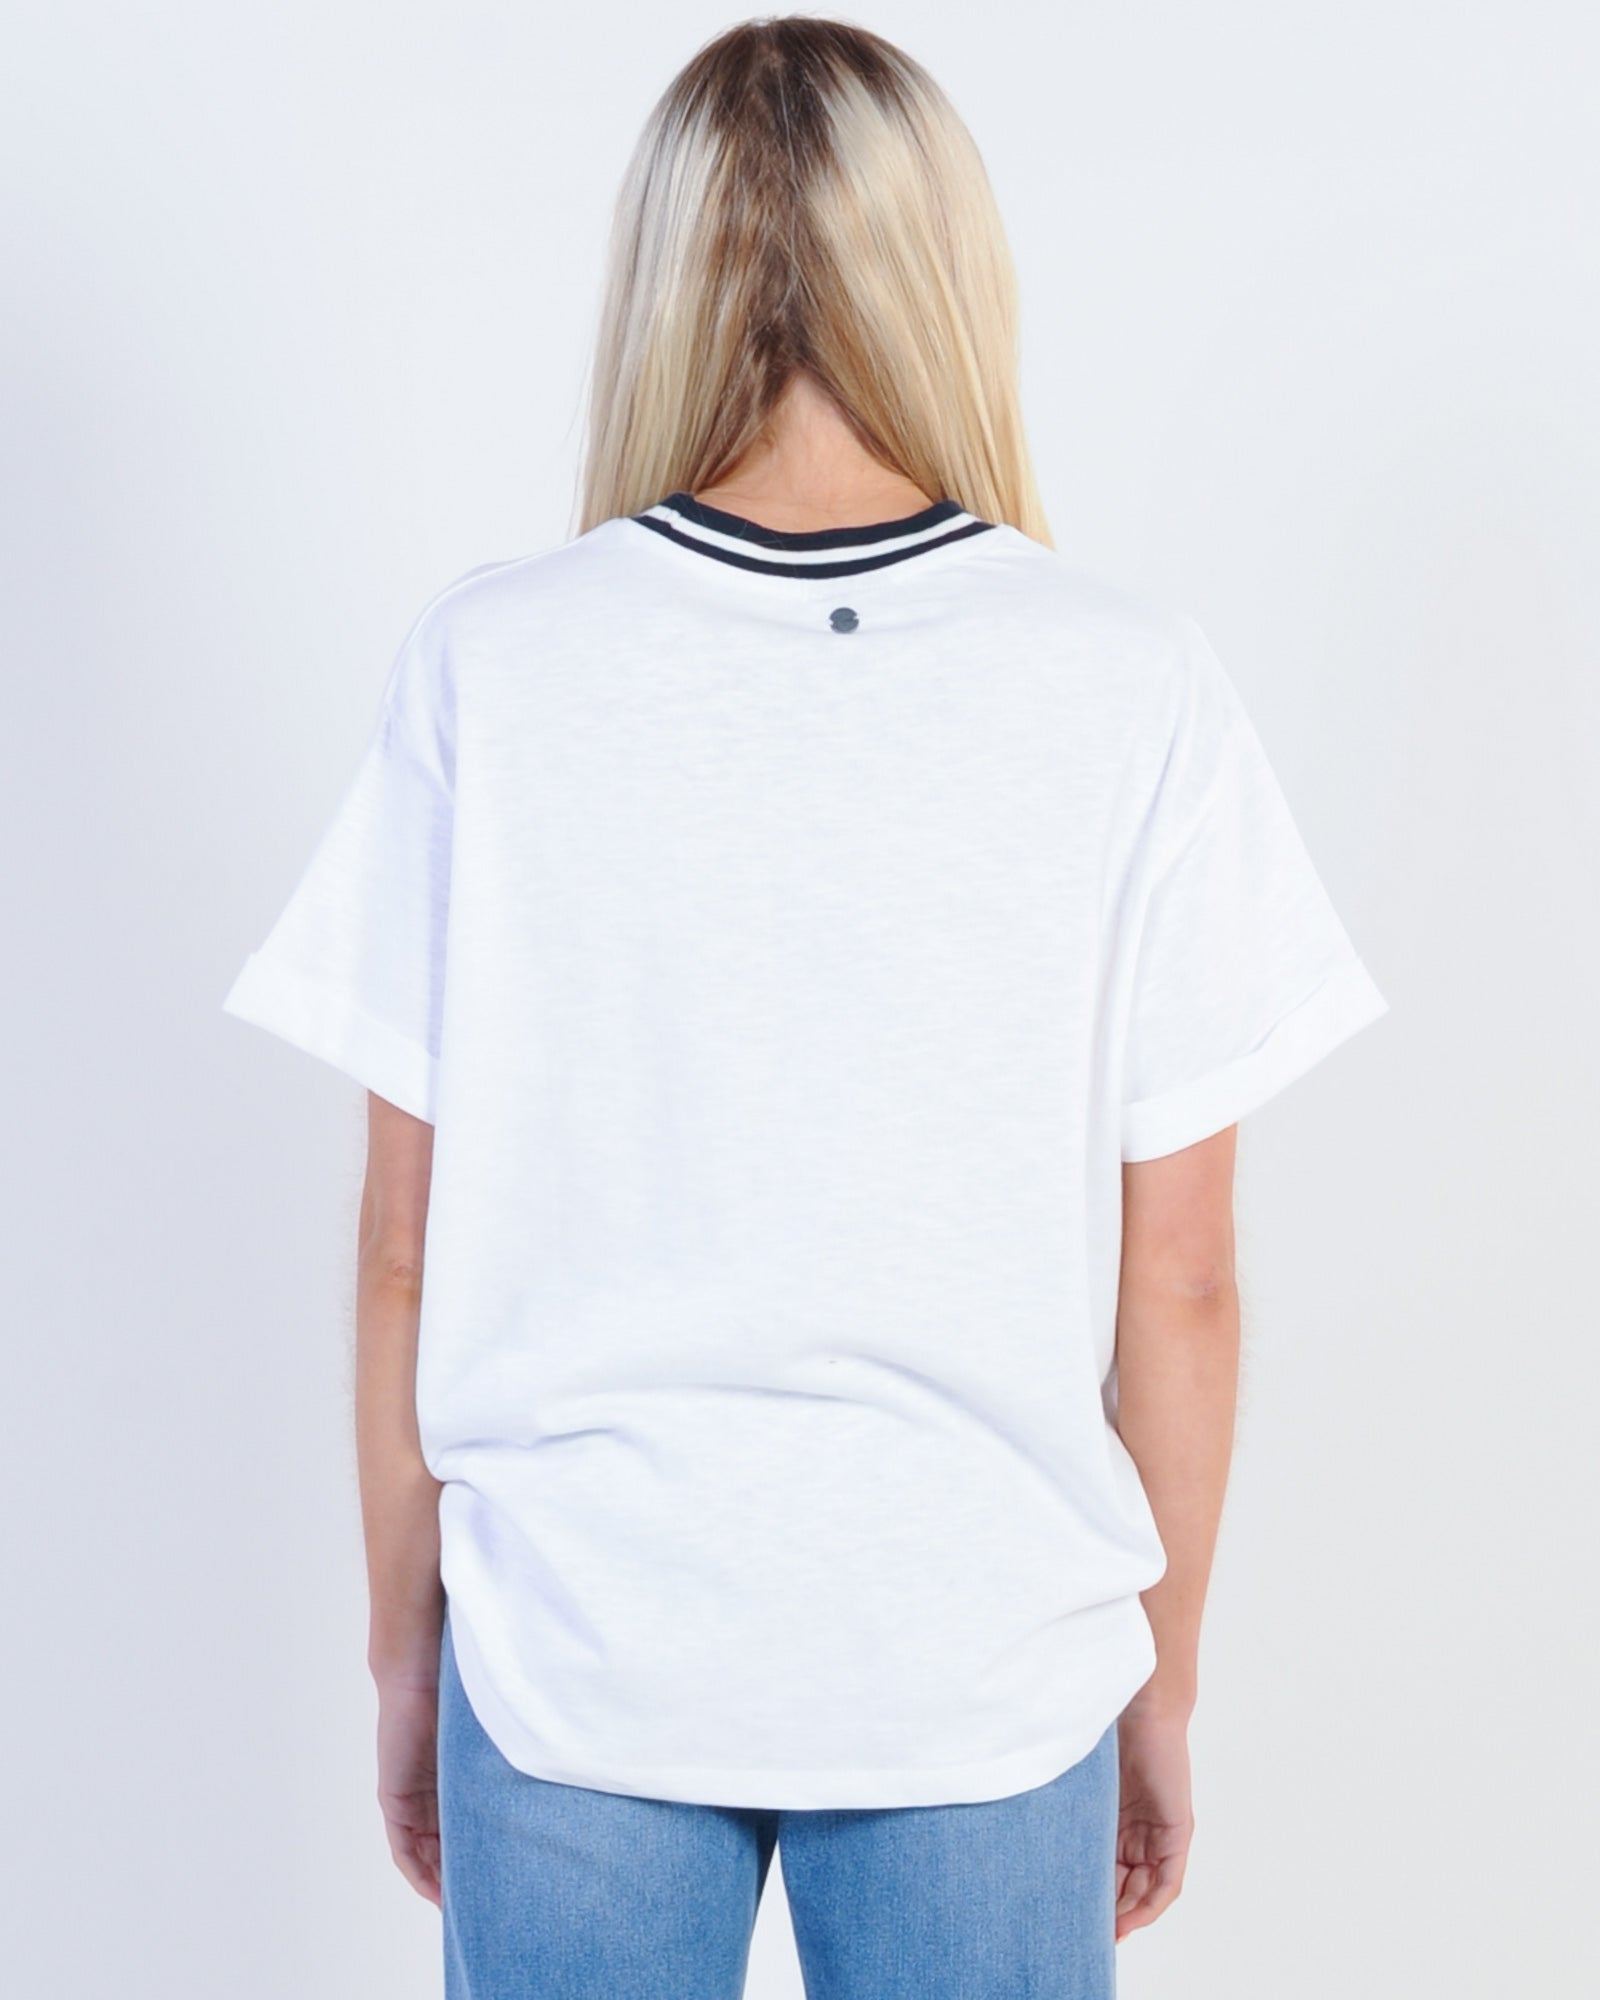 All About Eve Hollywood O/Size Tee - White